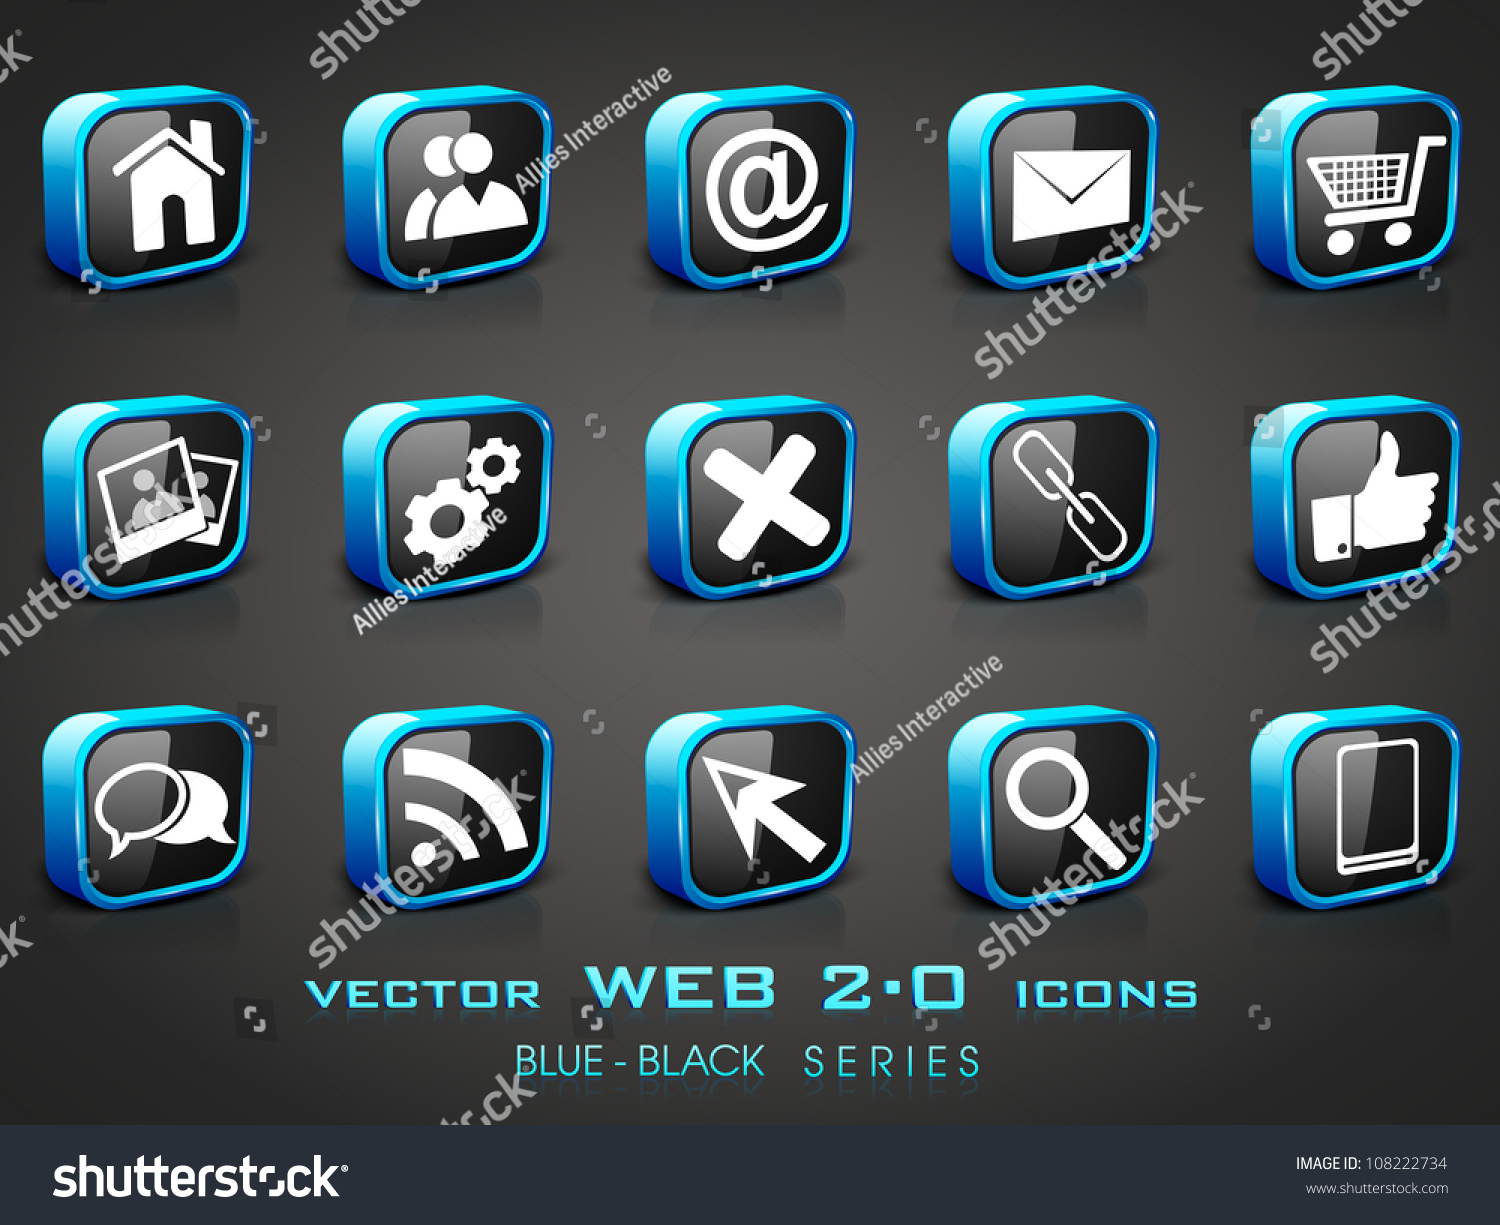 3d web 20 mail icons set stock vector 108222734 shutterstock 3d web 20 mail icons set in black and blue color can be used for sciox Gallery